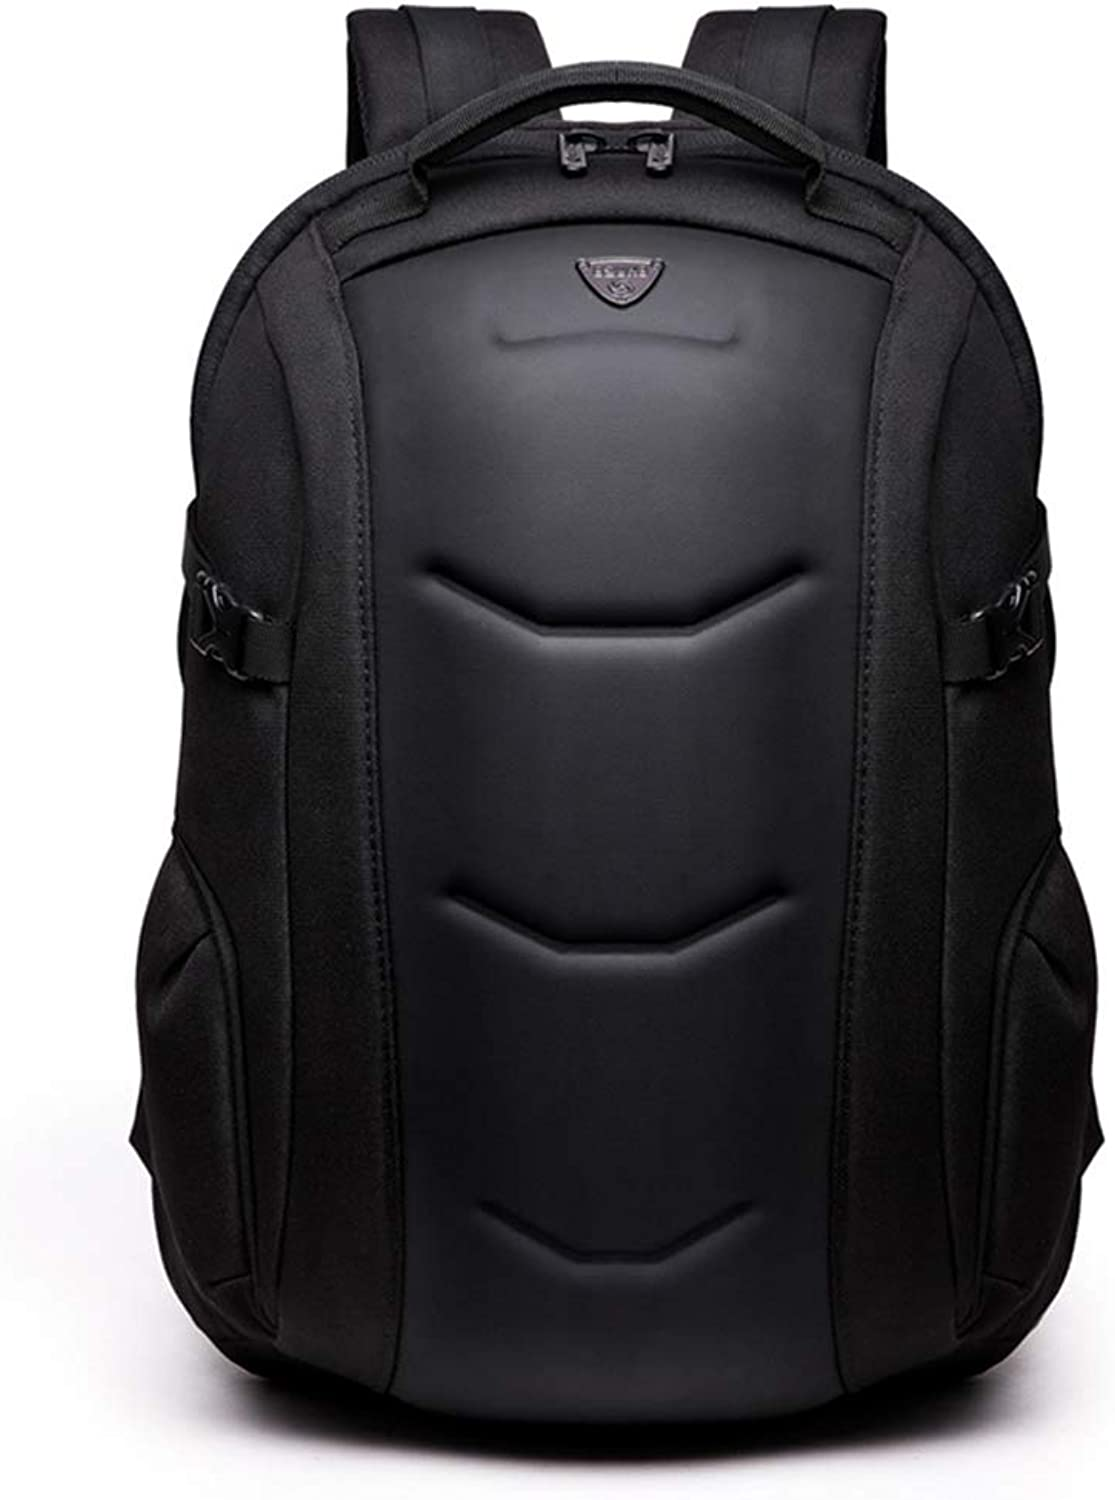 Backpack Male Business Computer Backpack Creative Leisure Travel Backpack Casual Fashion Travel Bag,Black